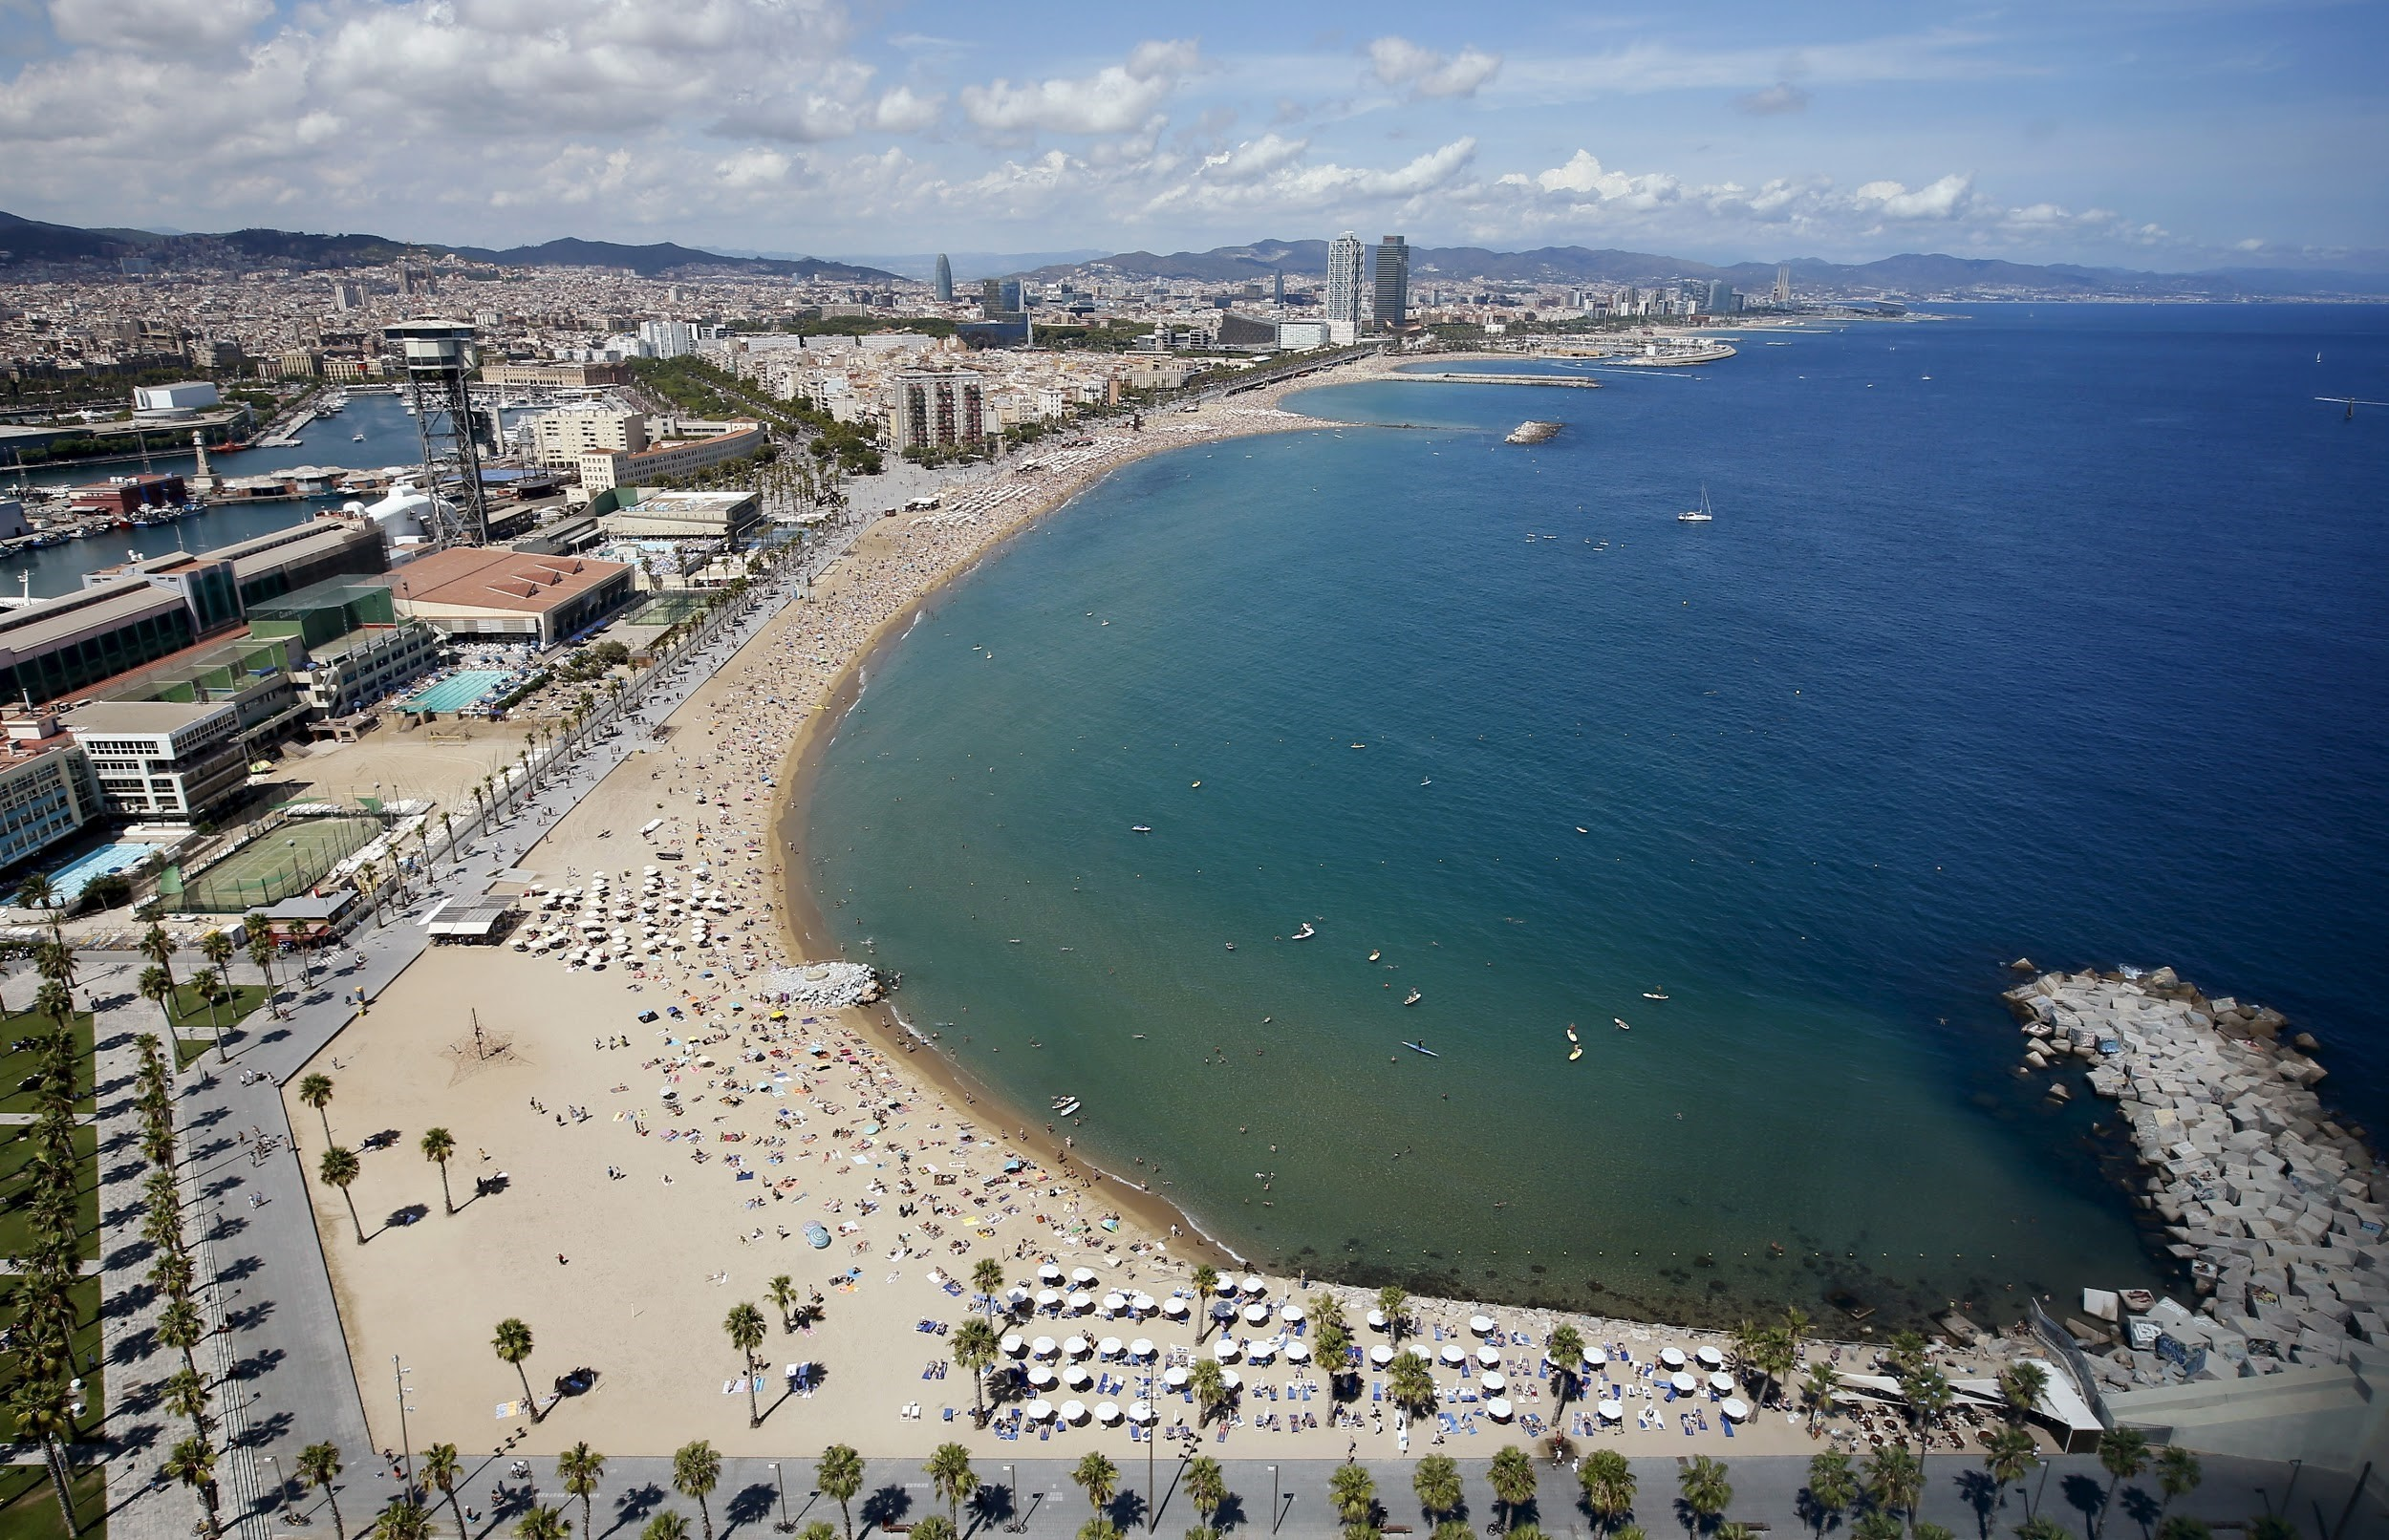 Residents of Barcelona take 30.5 days leave on average